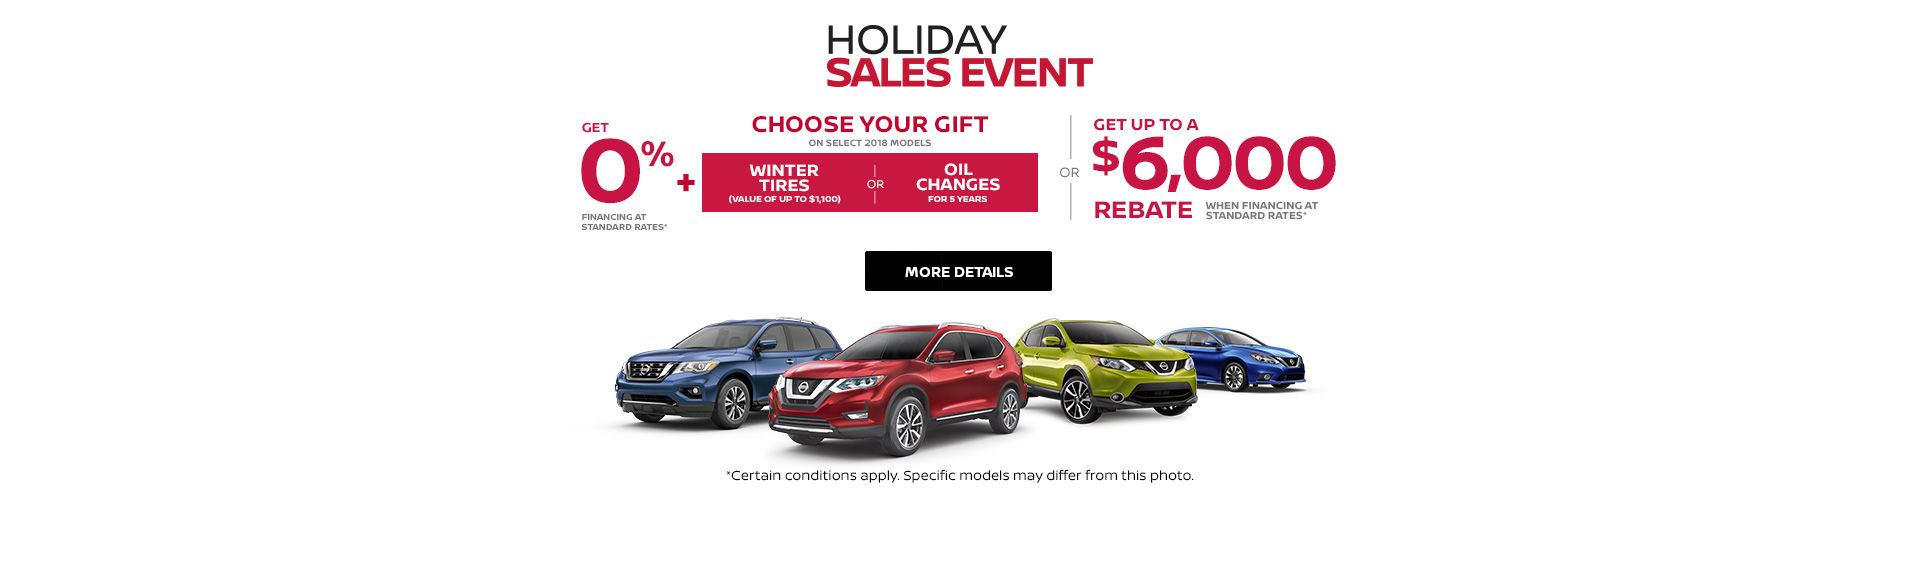 Nissan's Holiday Sales Event